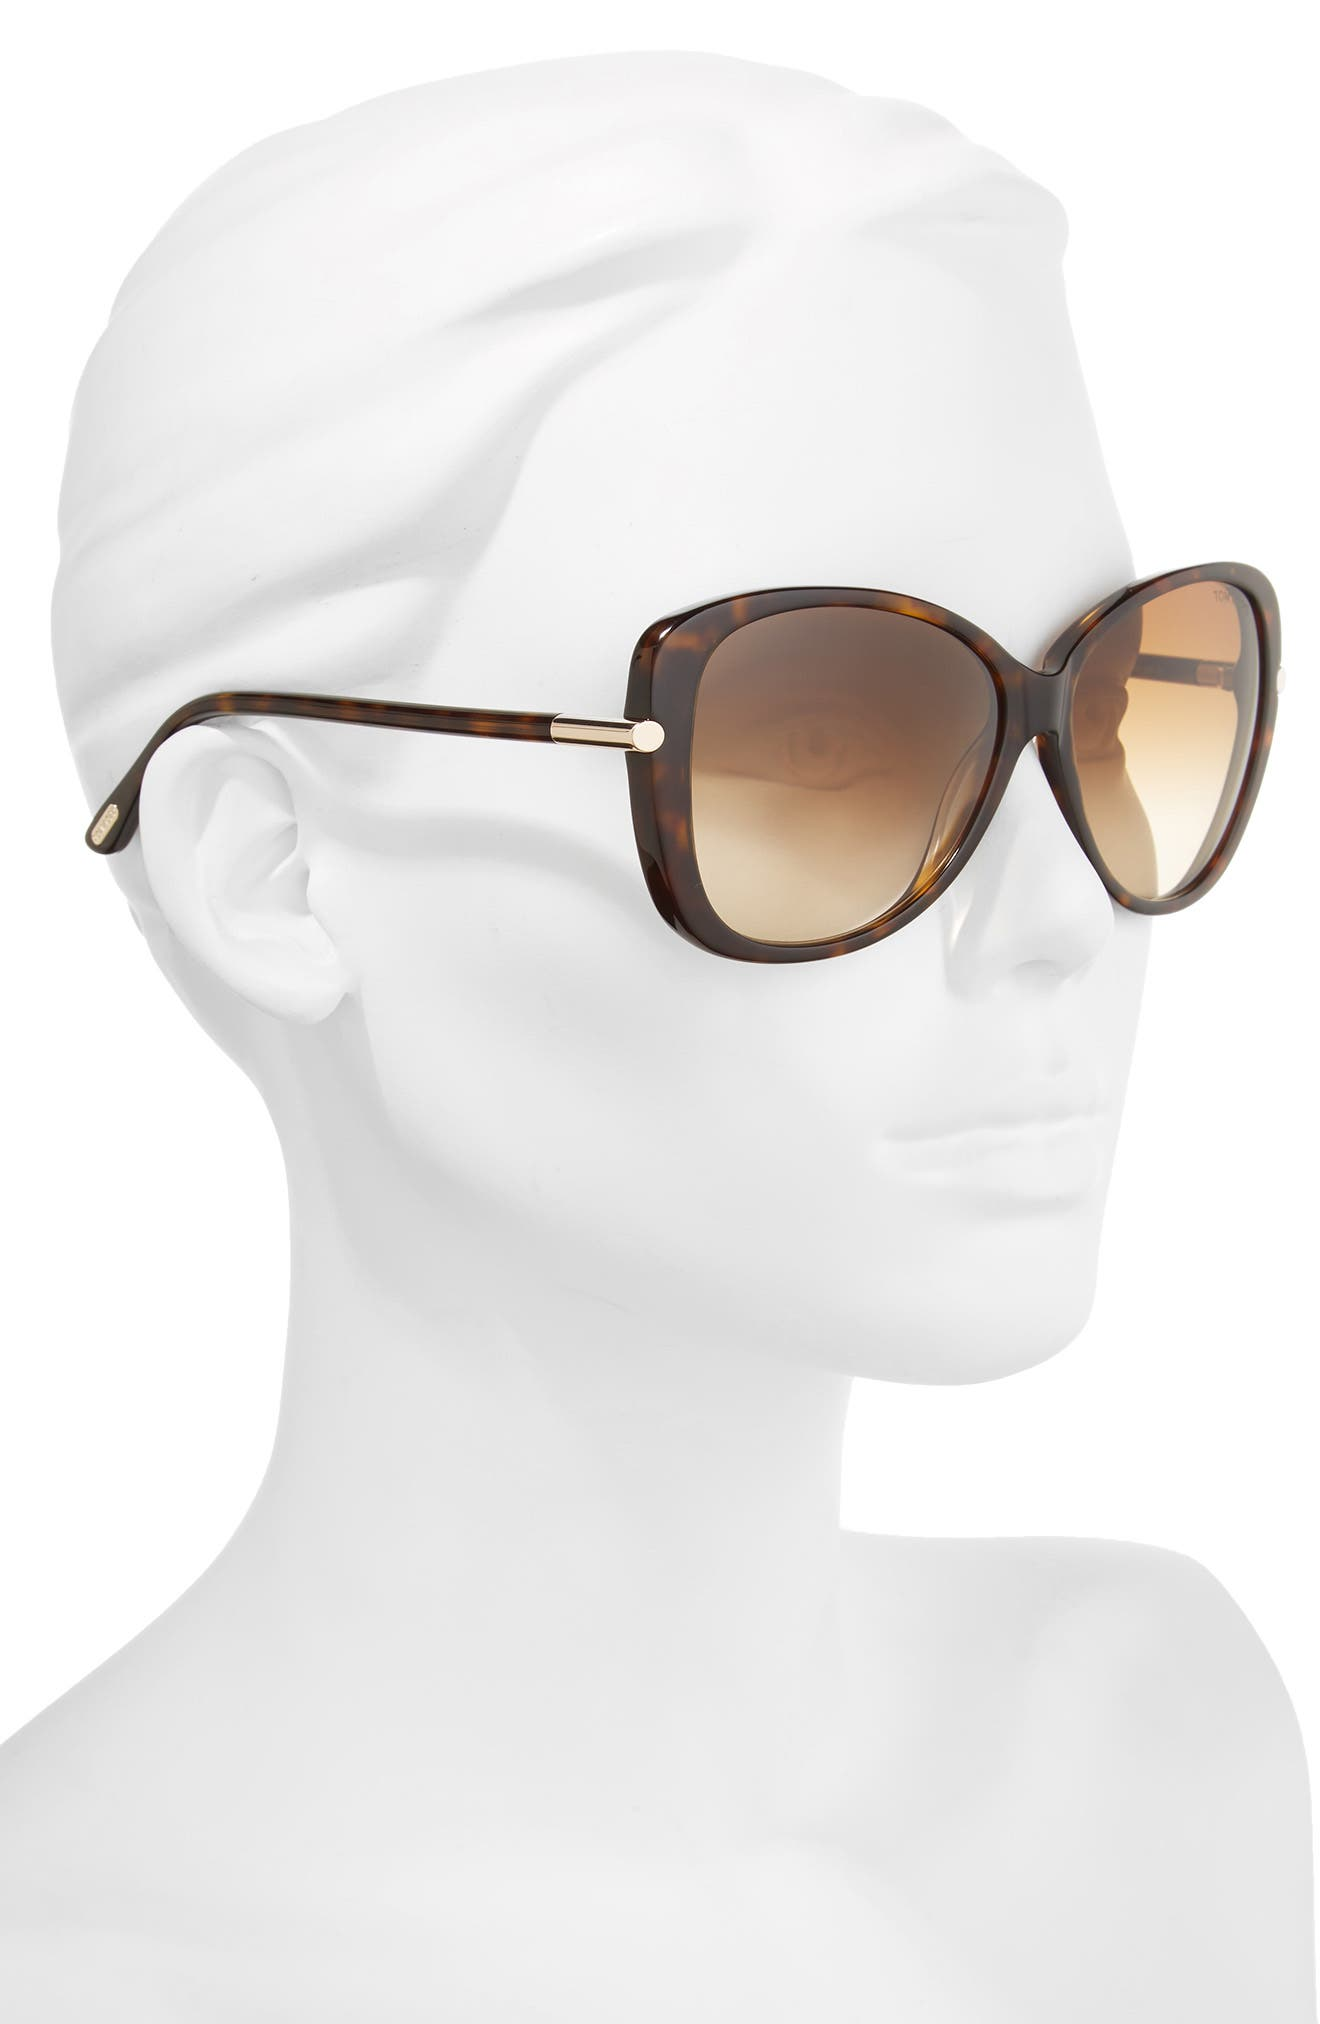 TOM FORD,                             Linda 59mm Gradient Butterfly Sunglasses,                             Alternate thumbnail 2, color,                             200